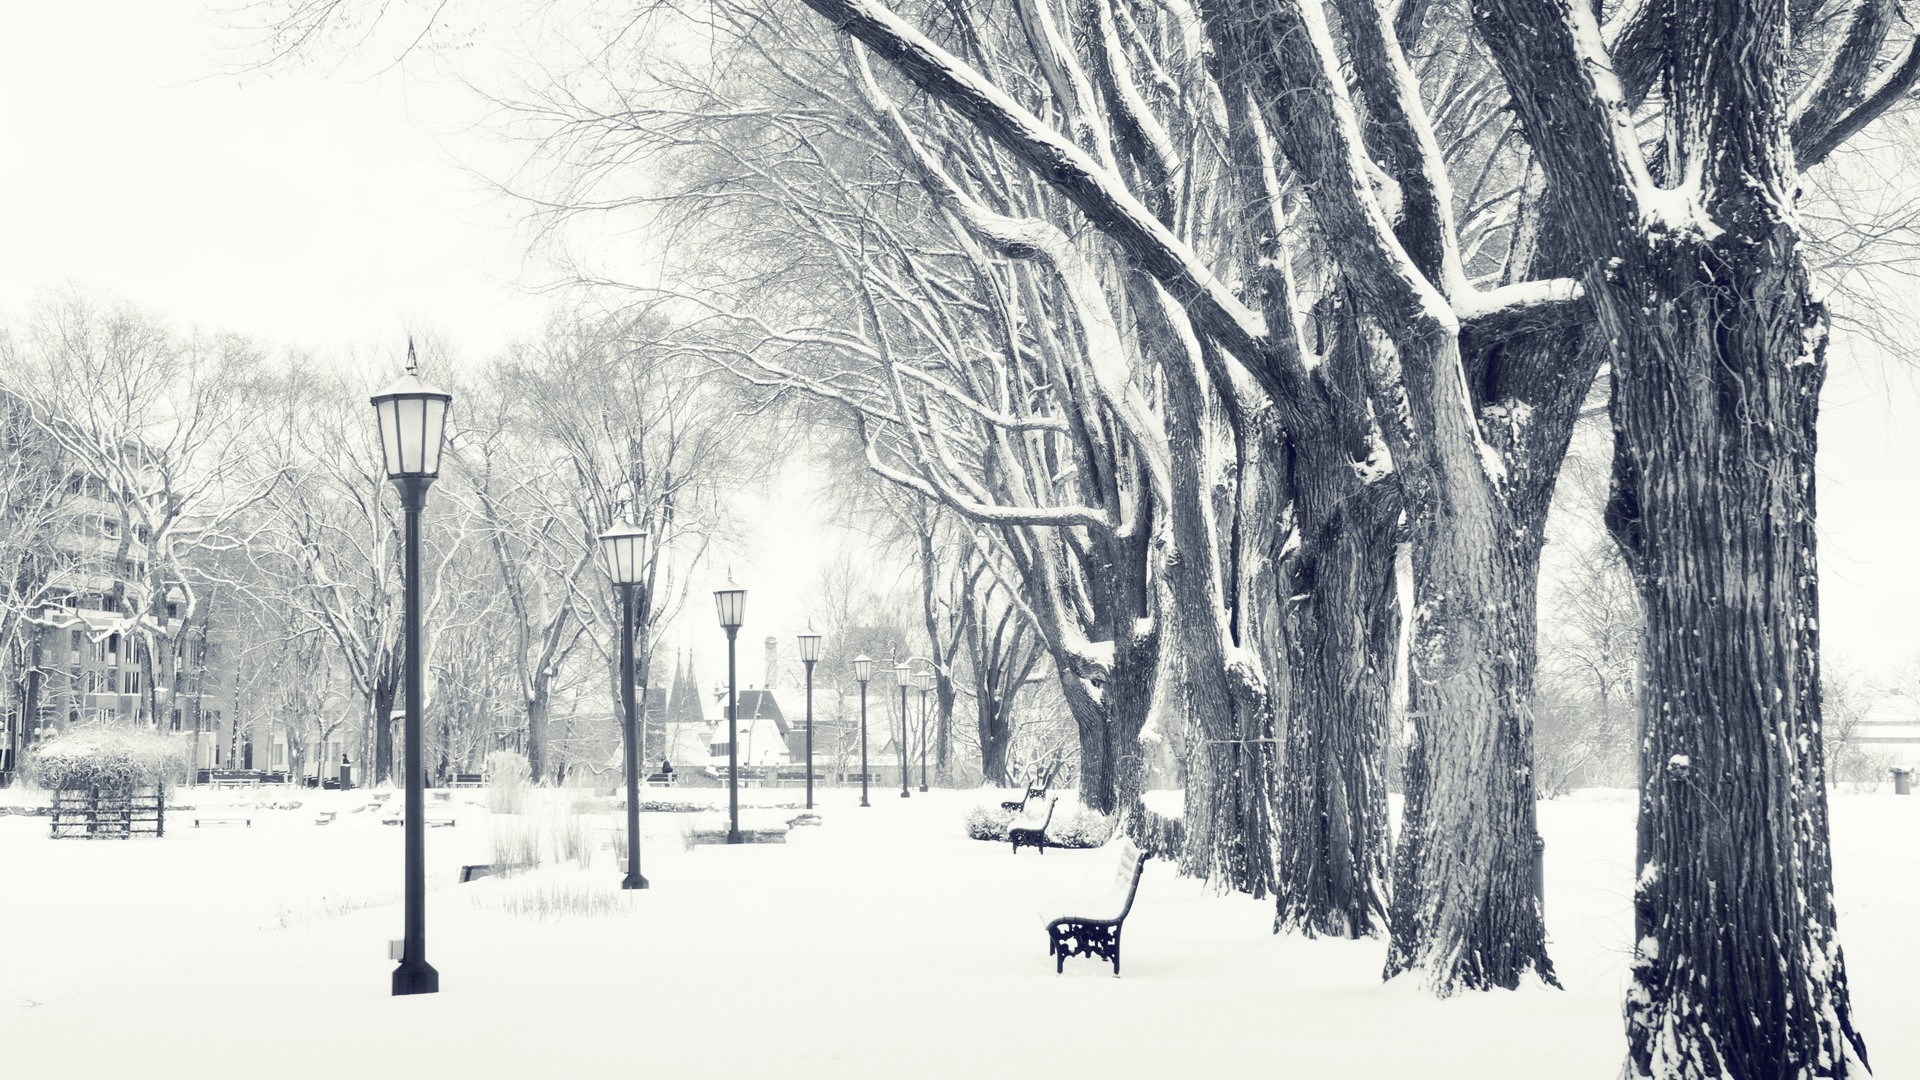 winter desktop backgrounds - wallpaper, high definition, high